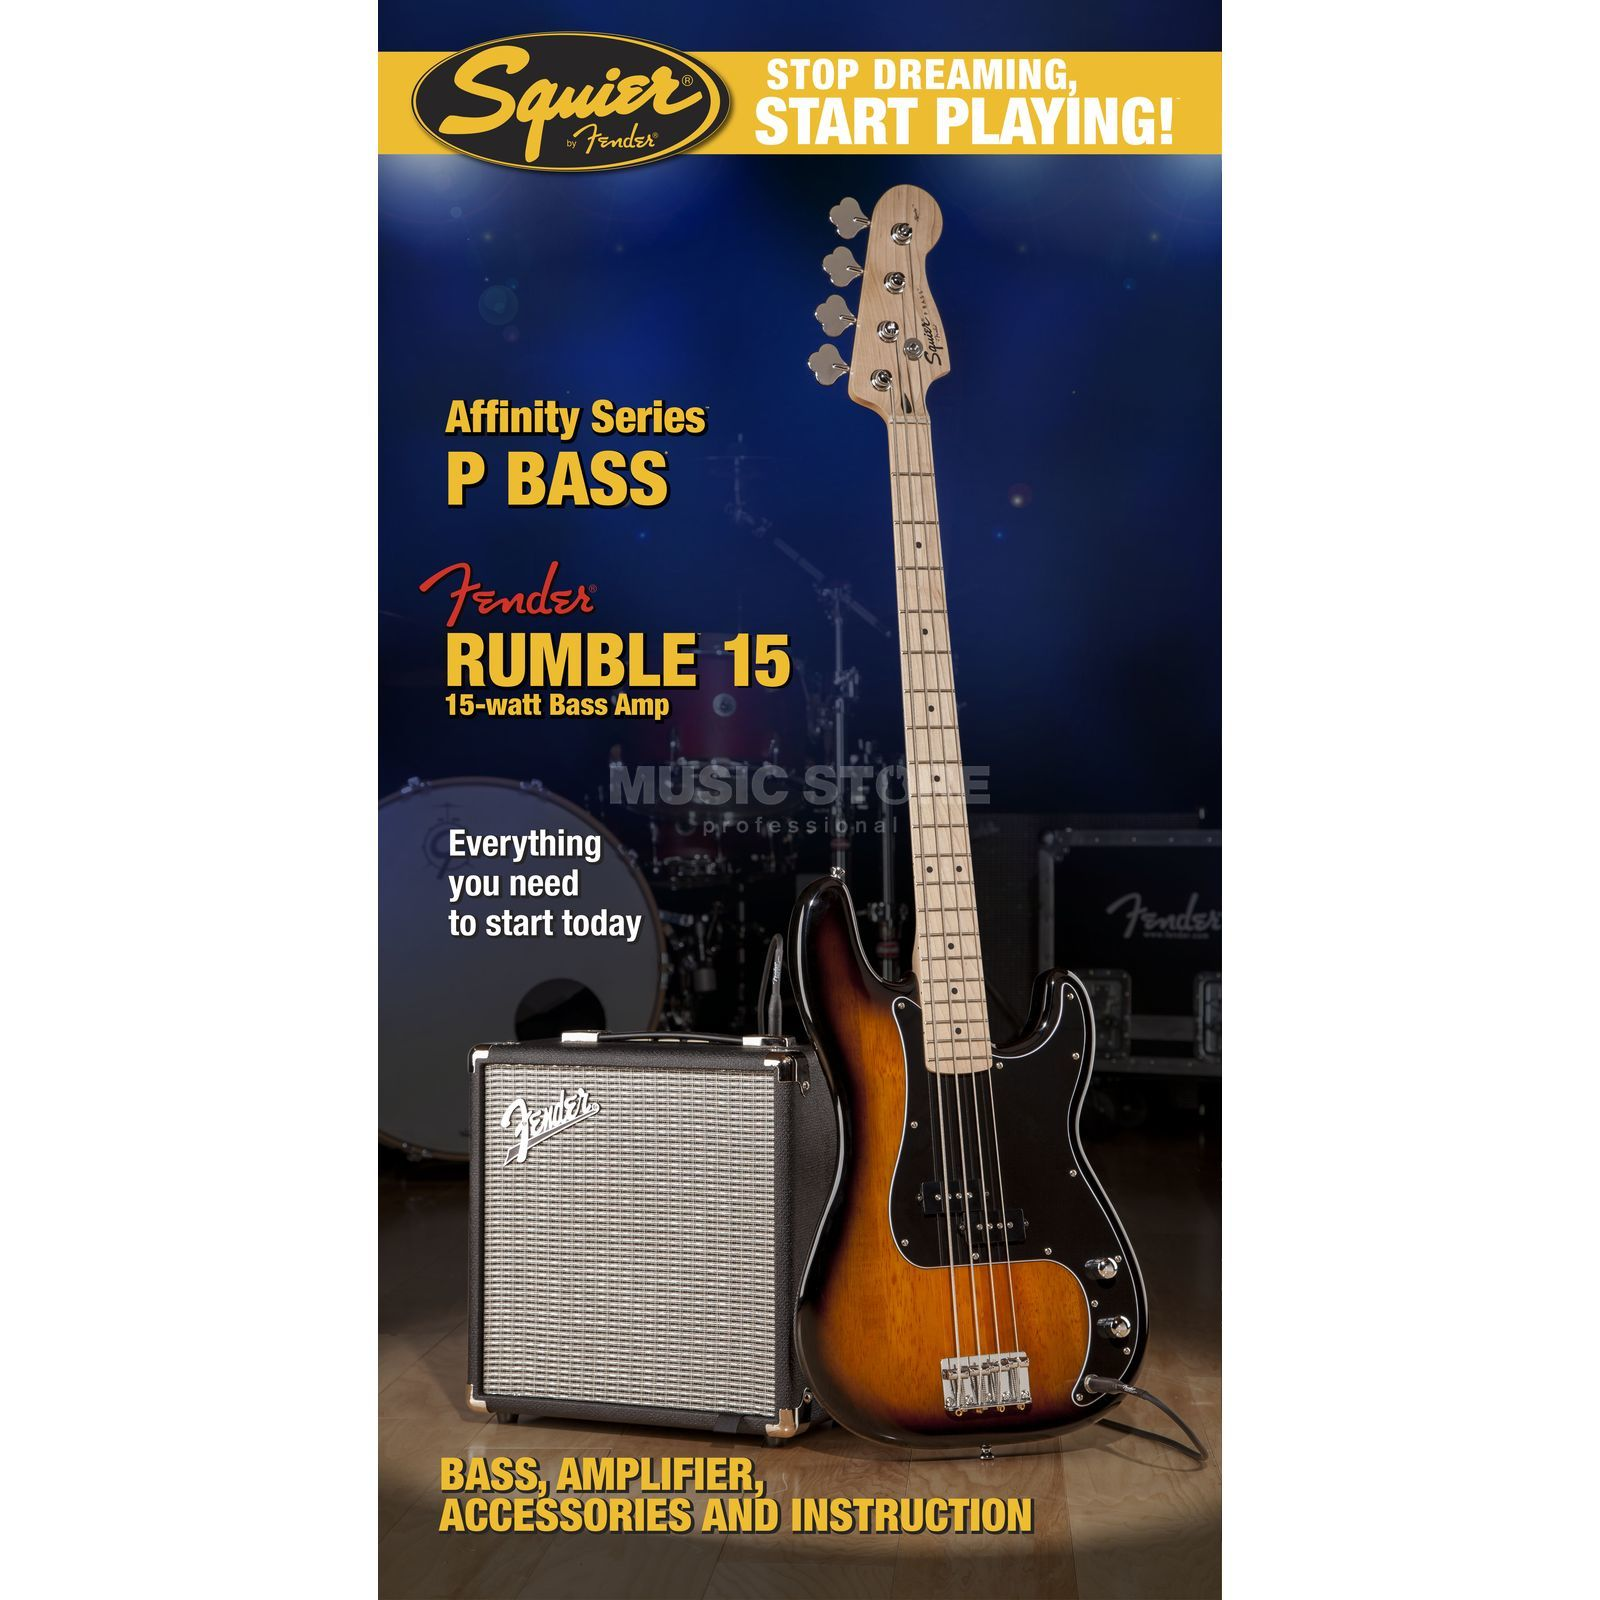 Fender Squier Affinity Series Precision Bass Pack Brown Sunburst w/ Fender Rumble 15 Imagen del producto